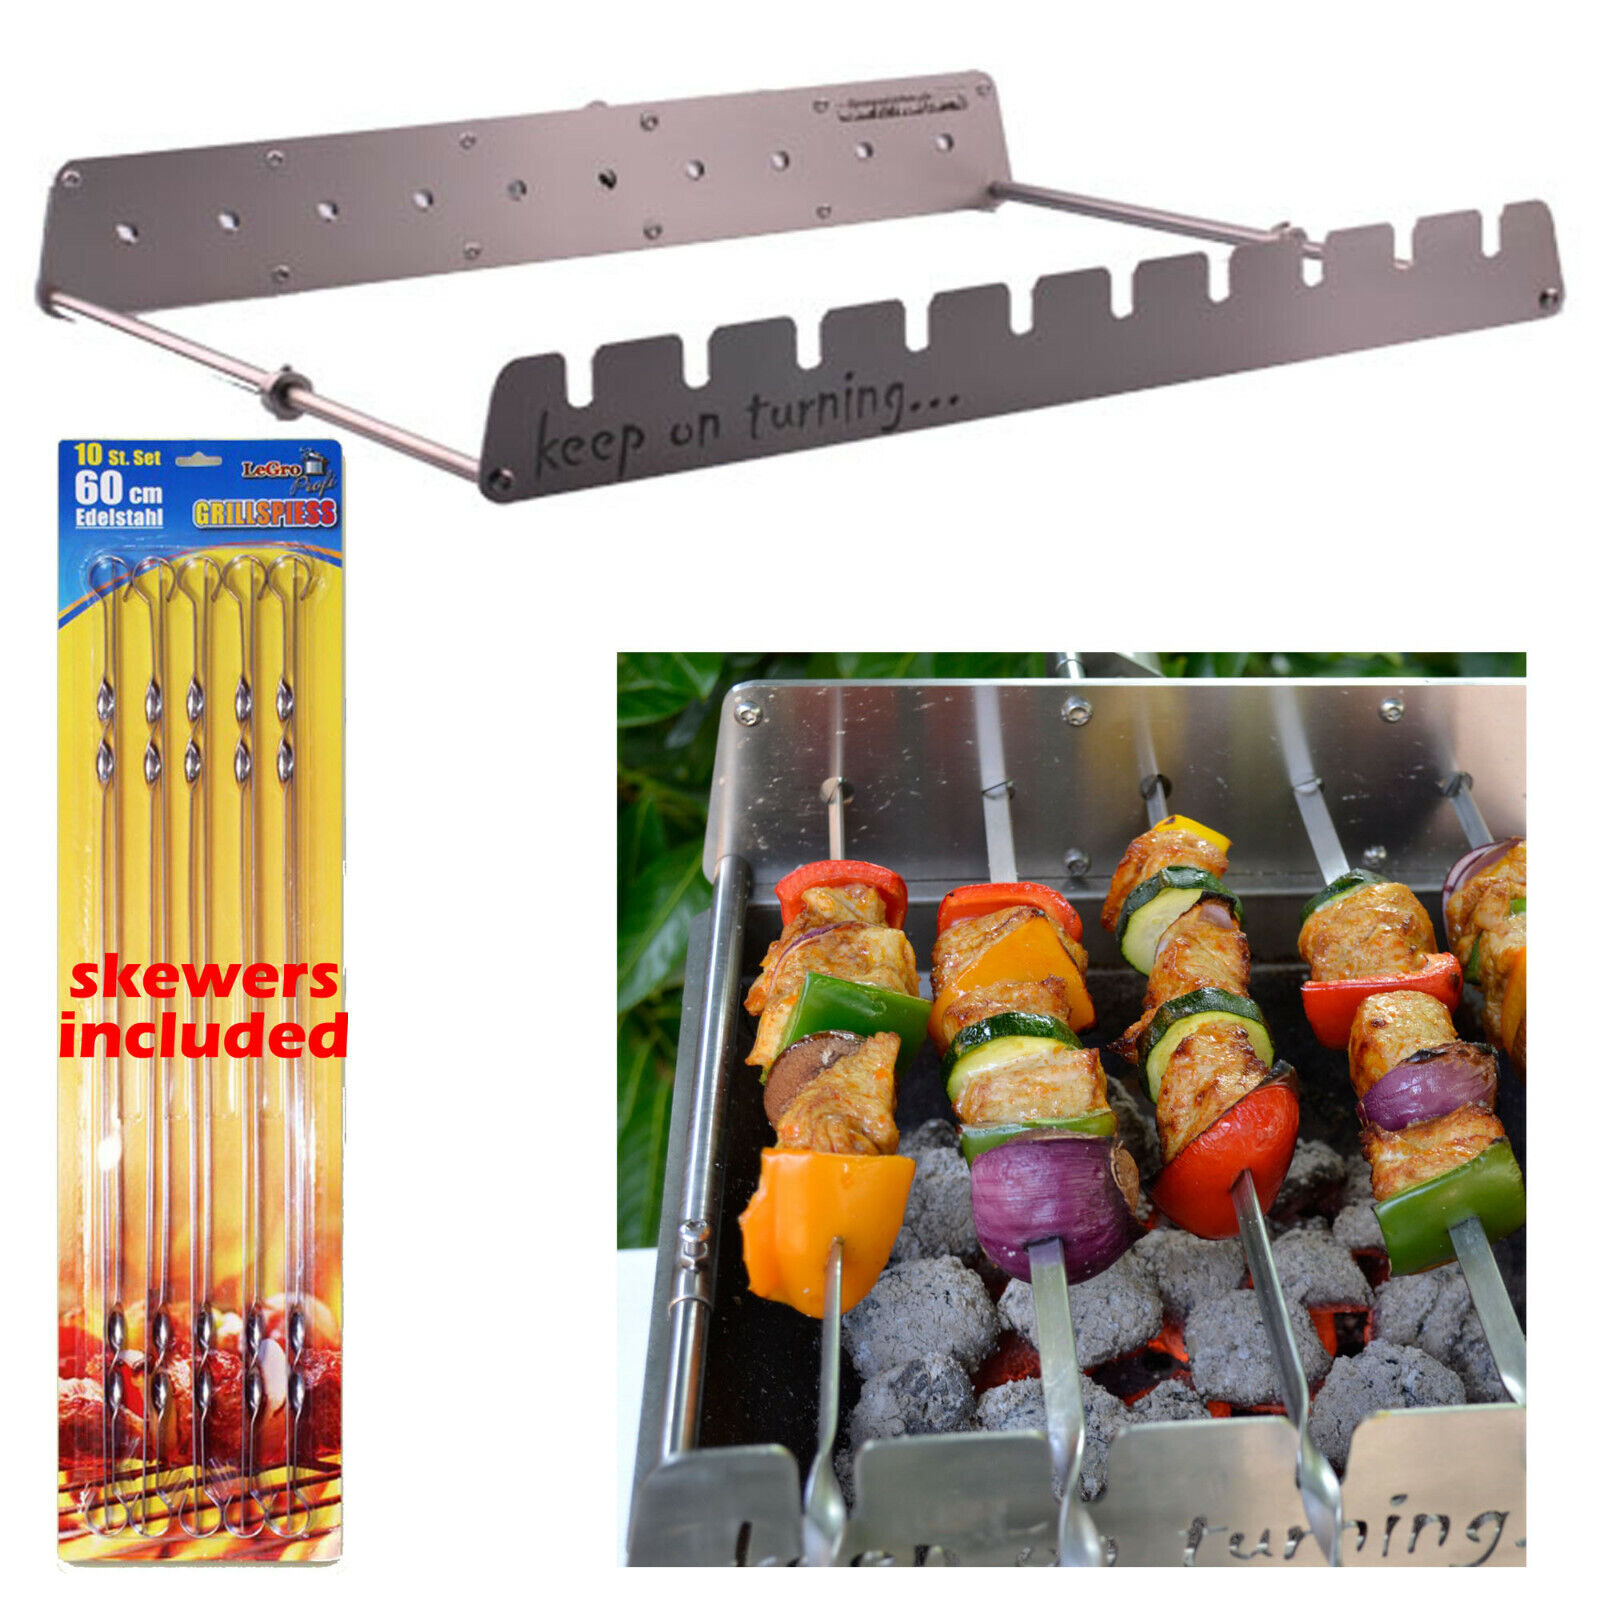 10 Skewer Rotisserie Rack Grill Automatic Rotating Motor Operated BBQ Kit